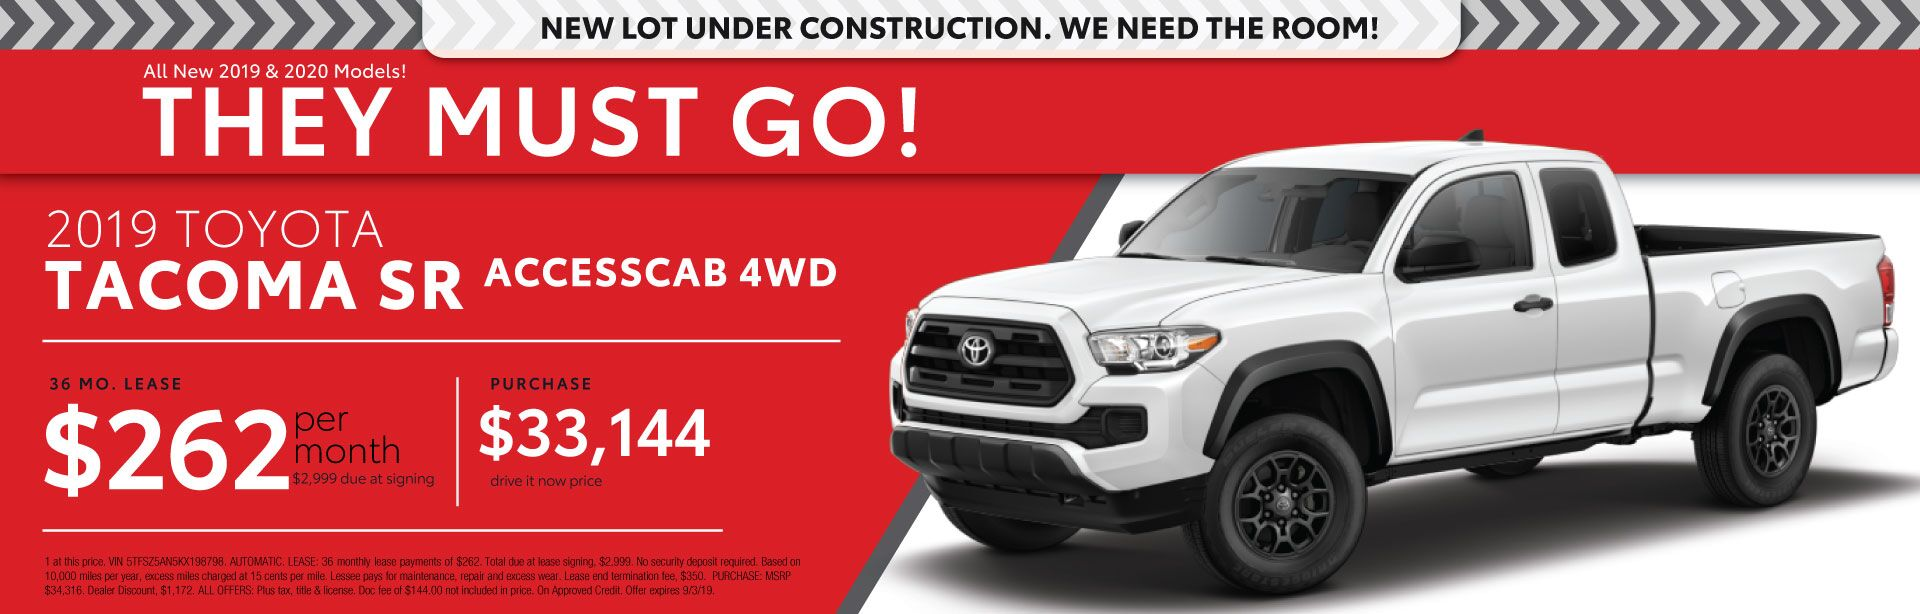 2019 Tacoma SR - Lease for $262 per month for 36 months with $2,999 due at signing - Purchase price $33,144